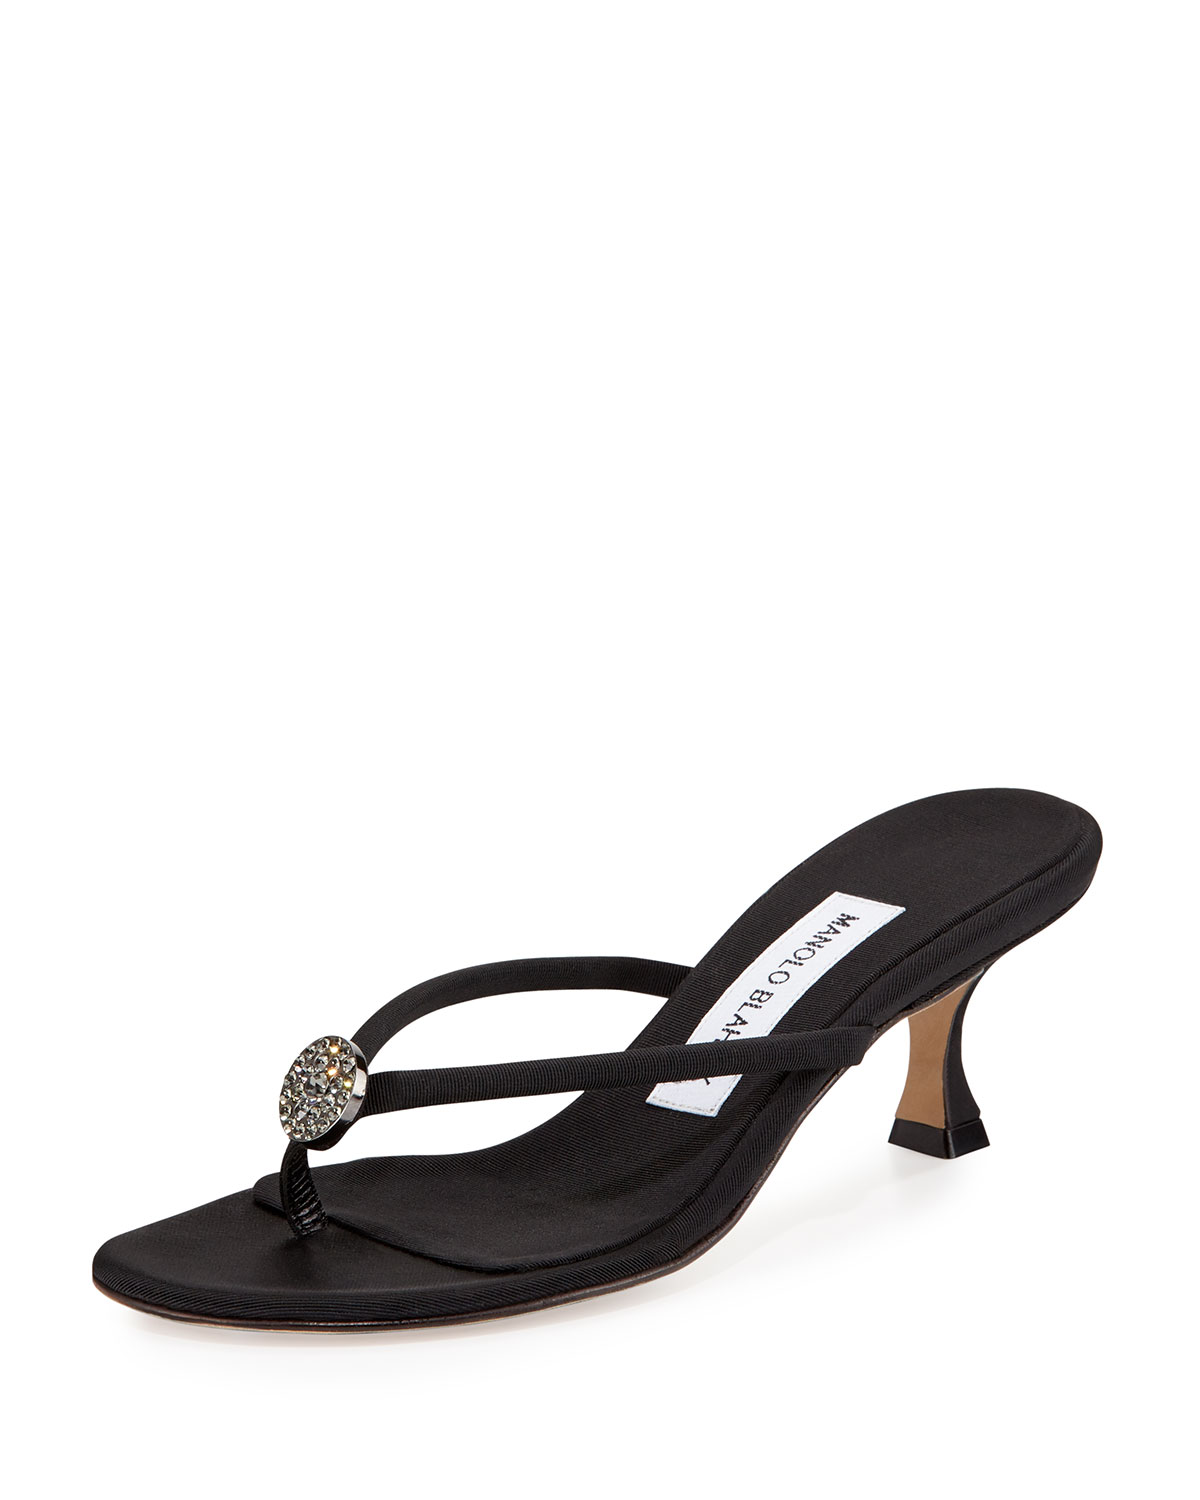 Manolo Blahnik Grosgrain Embellished Sandals discount newest buy cheap really cheap sale choice discount classic SG8cU